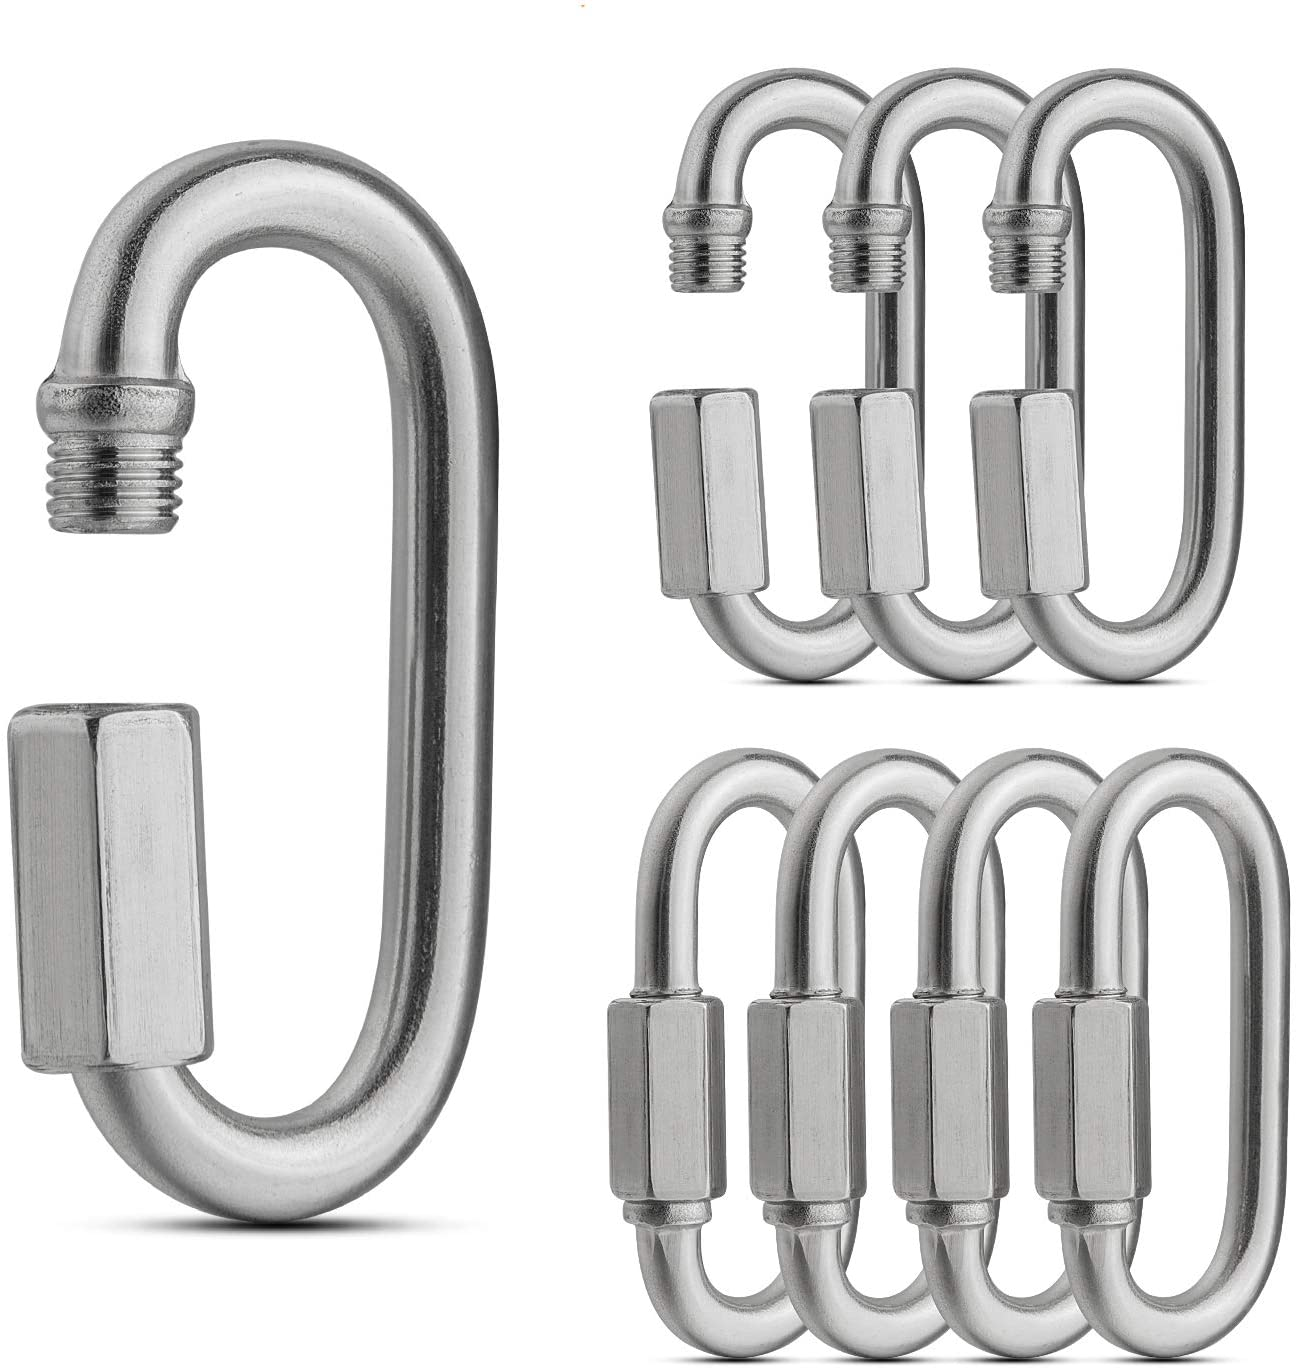 Camping and Outdoor Equipment 30 Packs Quick Link M4 5//32 inch Stainless Steel Quick Link Chain D Shape Locking Quick Chain for Carabiner Load 500 Lbs. Max Hammock